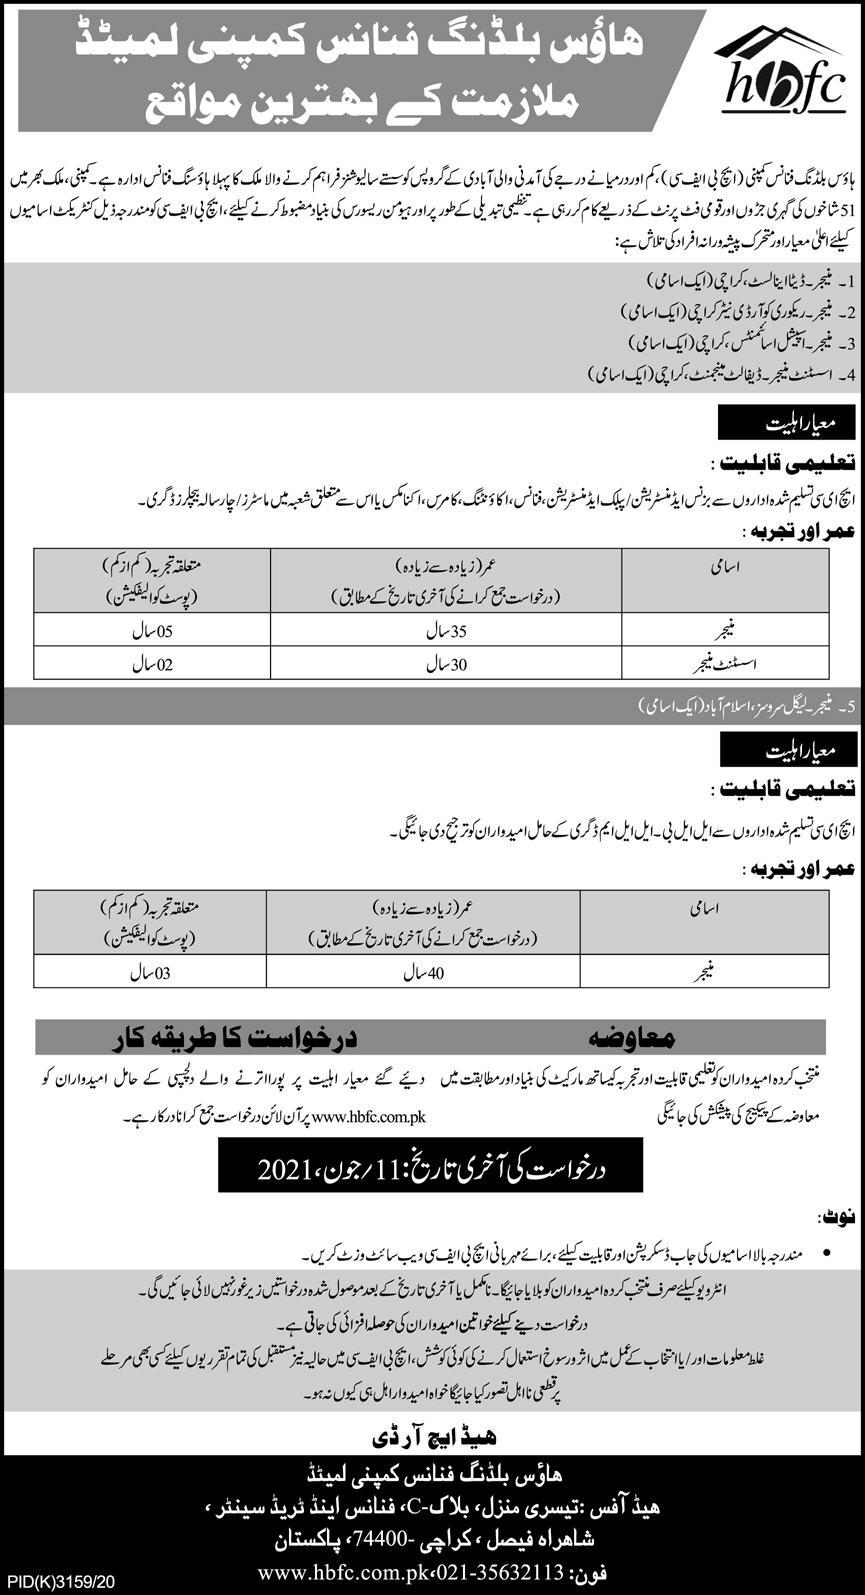 House Building Finance Company Limited (HBFC) Jobs 2021 in Pakistan